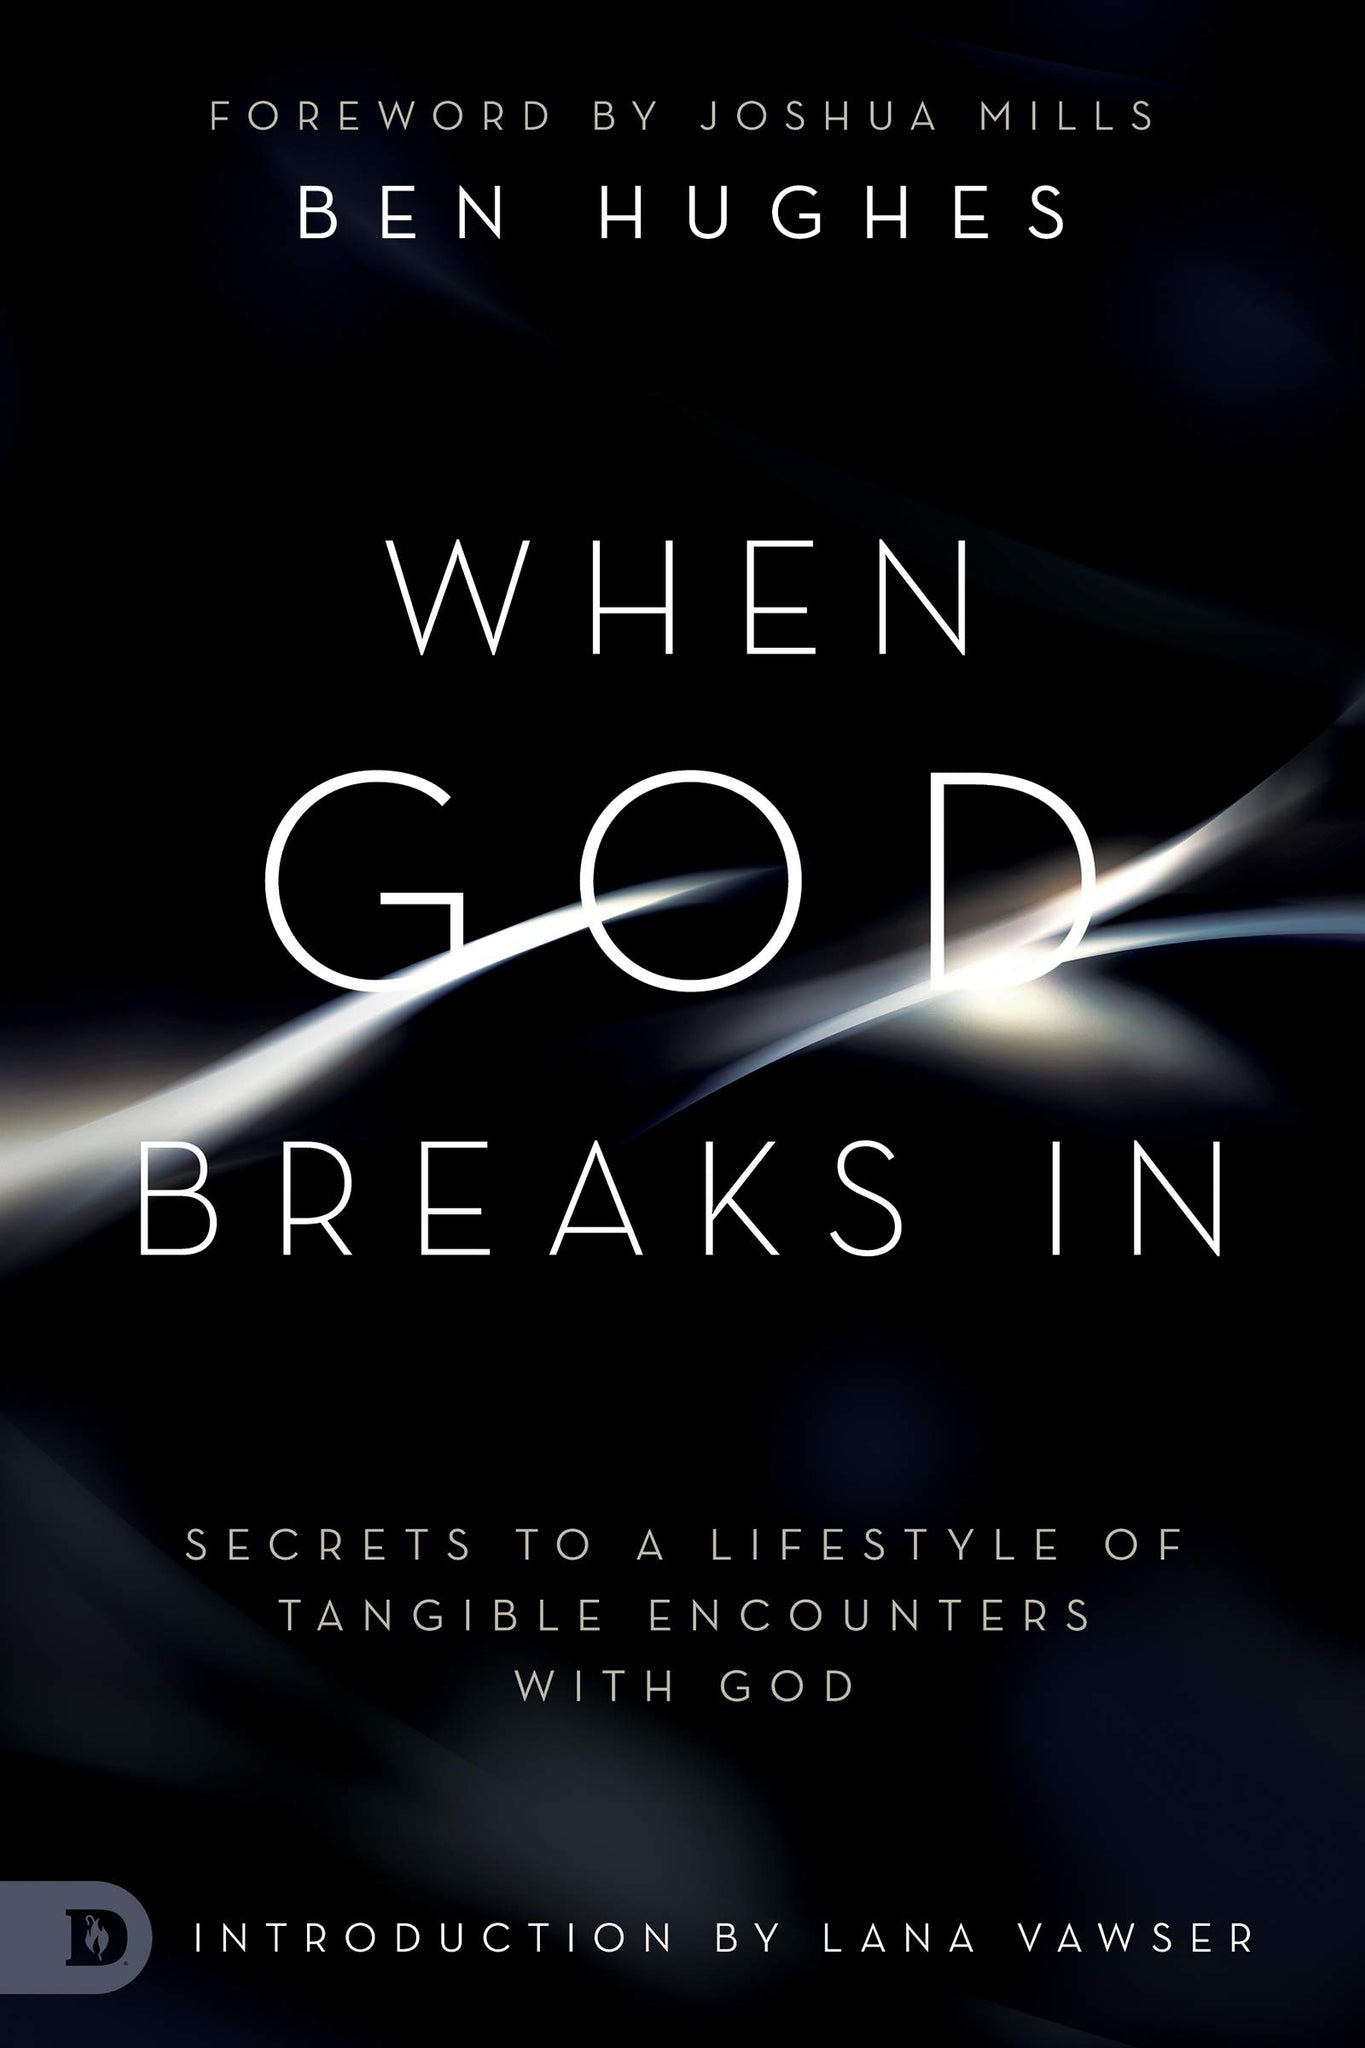 When God Breaks In: Secrets to a Lifestyle of Tangible Encounters with God